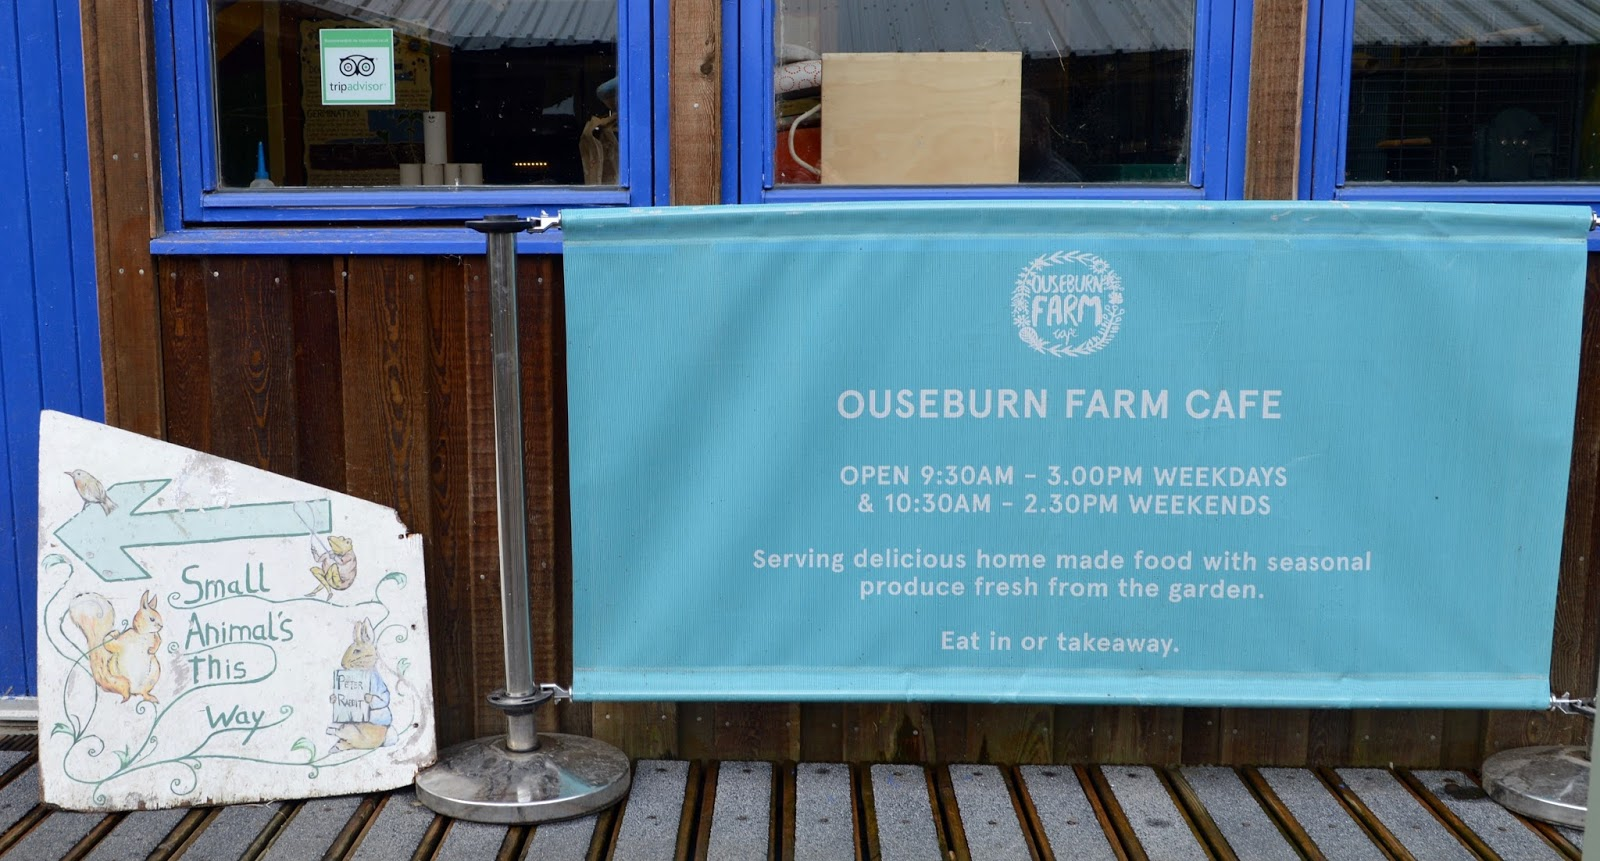 Ouseburn Farm Newcastle | A FREE Place to Take the Kids - cafes and small animals